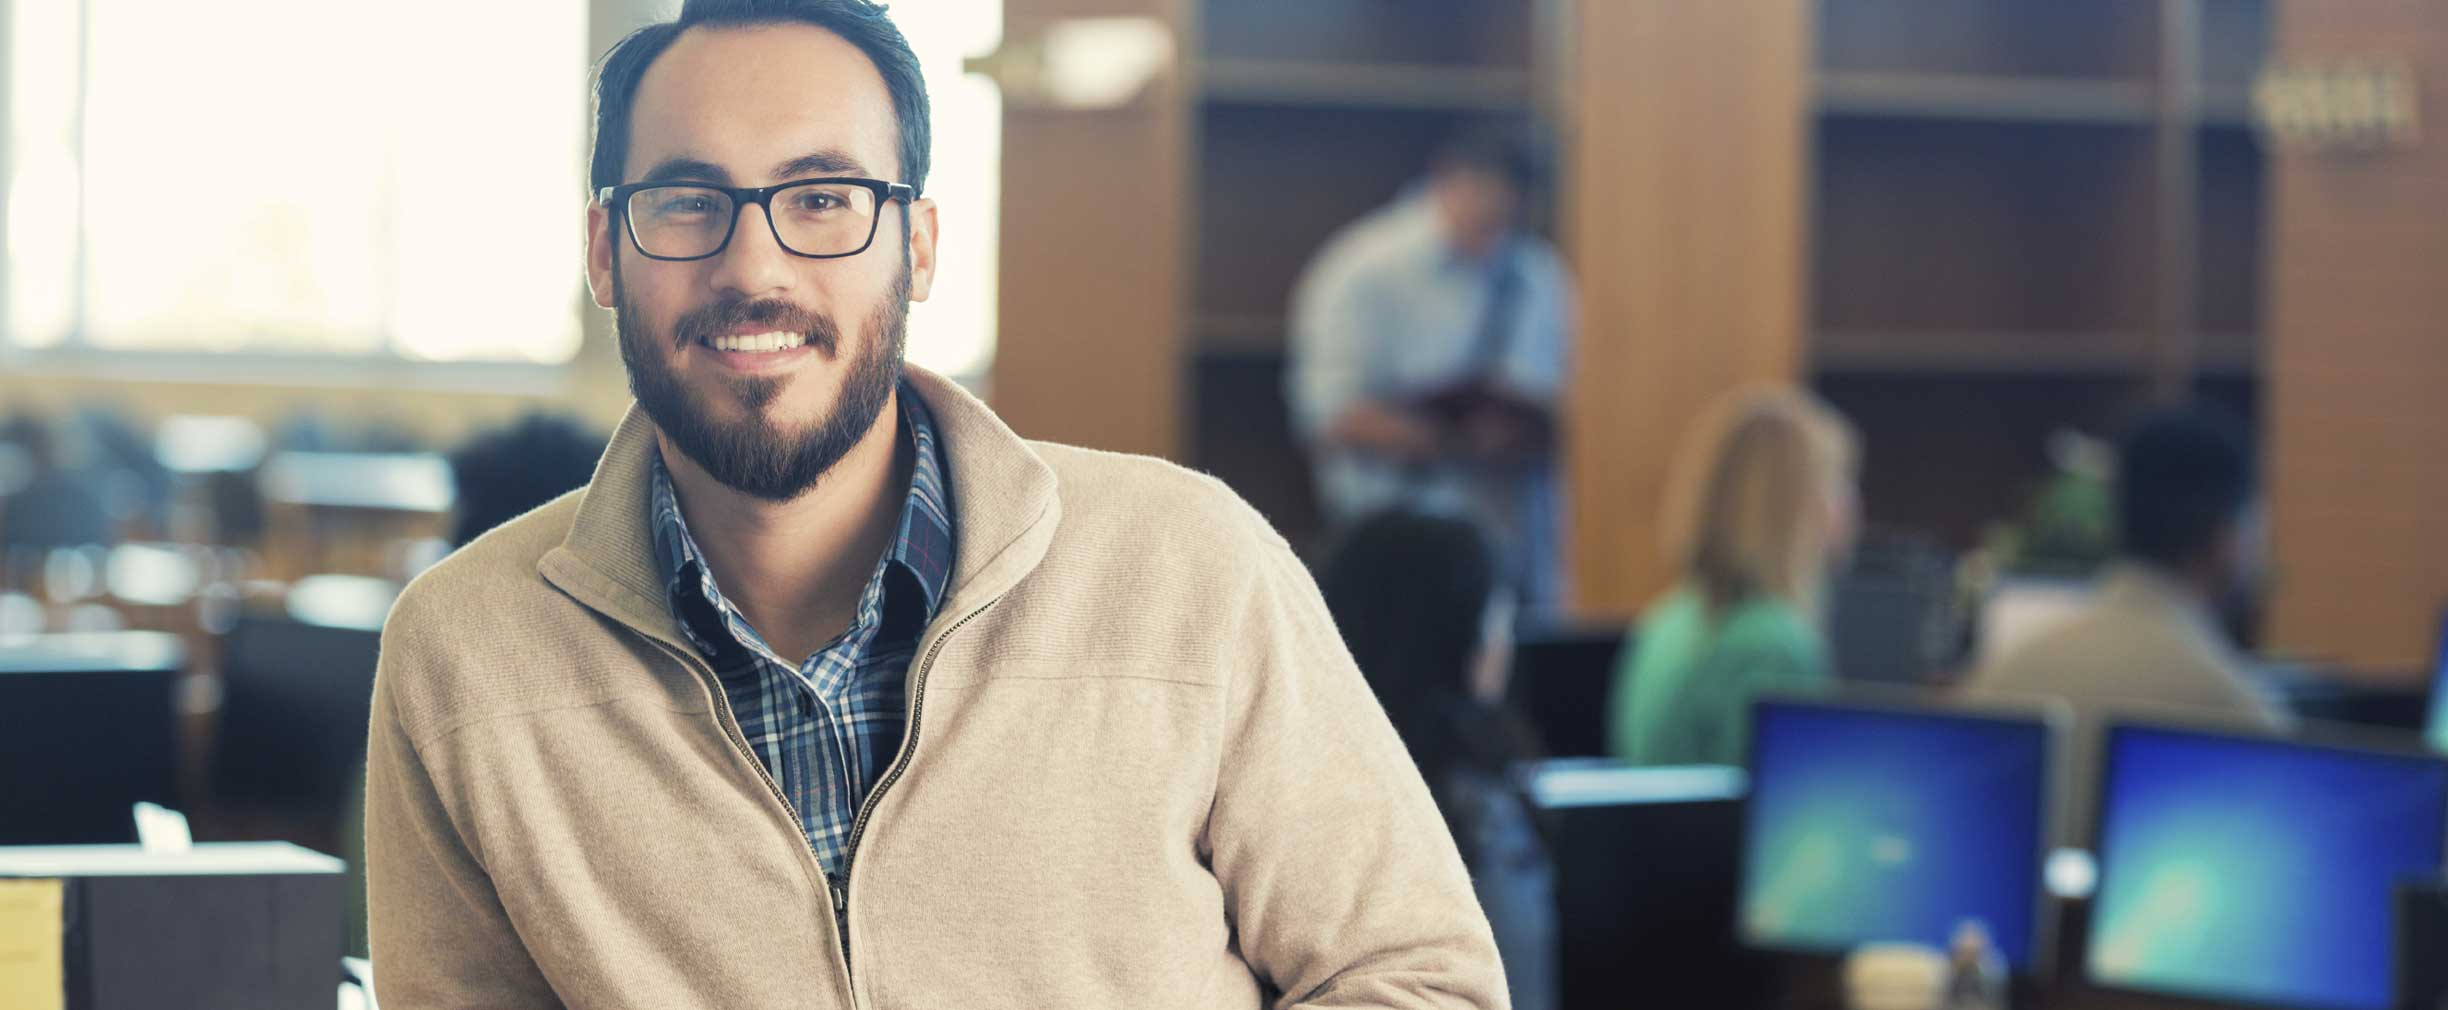 how to choose the right graduate school regions how to choose the right graduate school